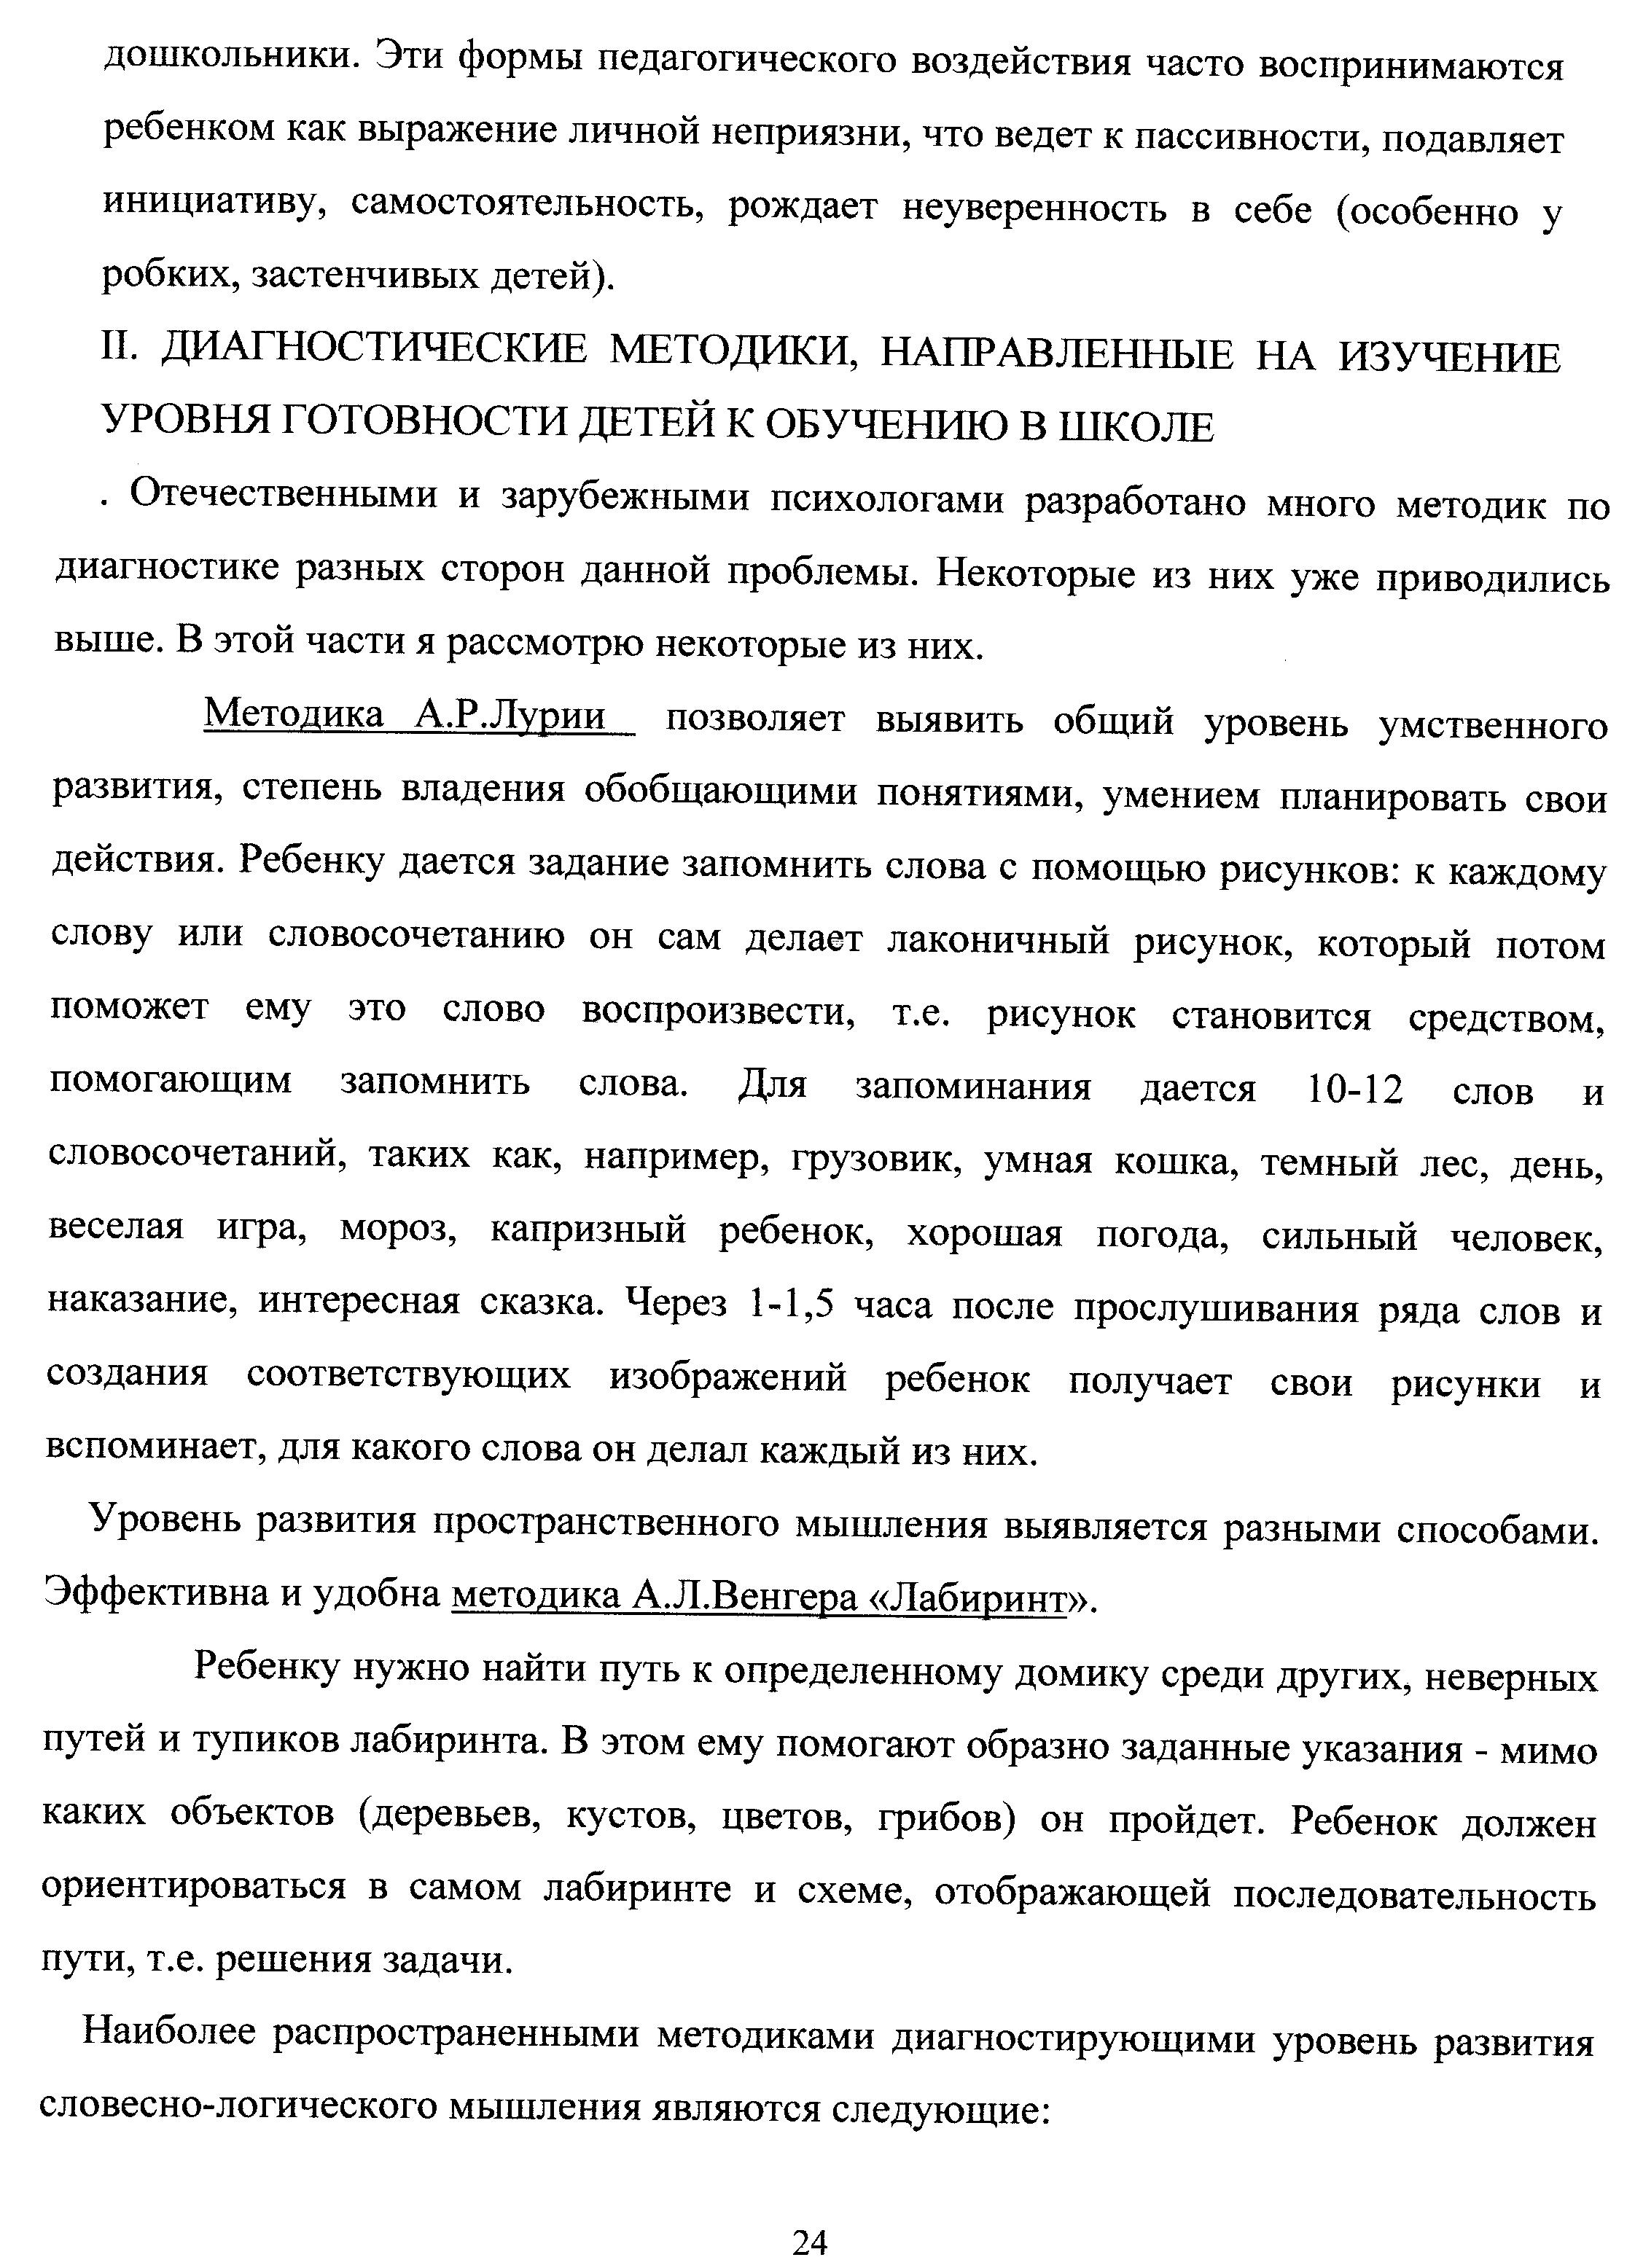 C:\Users\ЛАРИСА\Documents\Scanned Documents\Рисунок (128).jpg